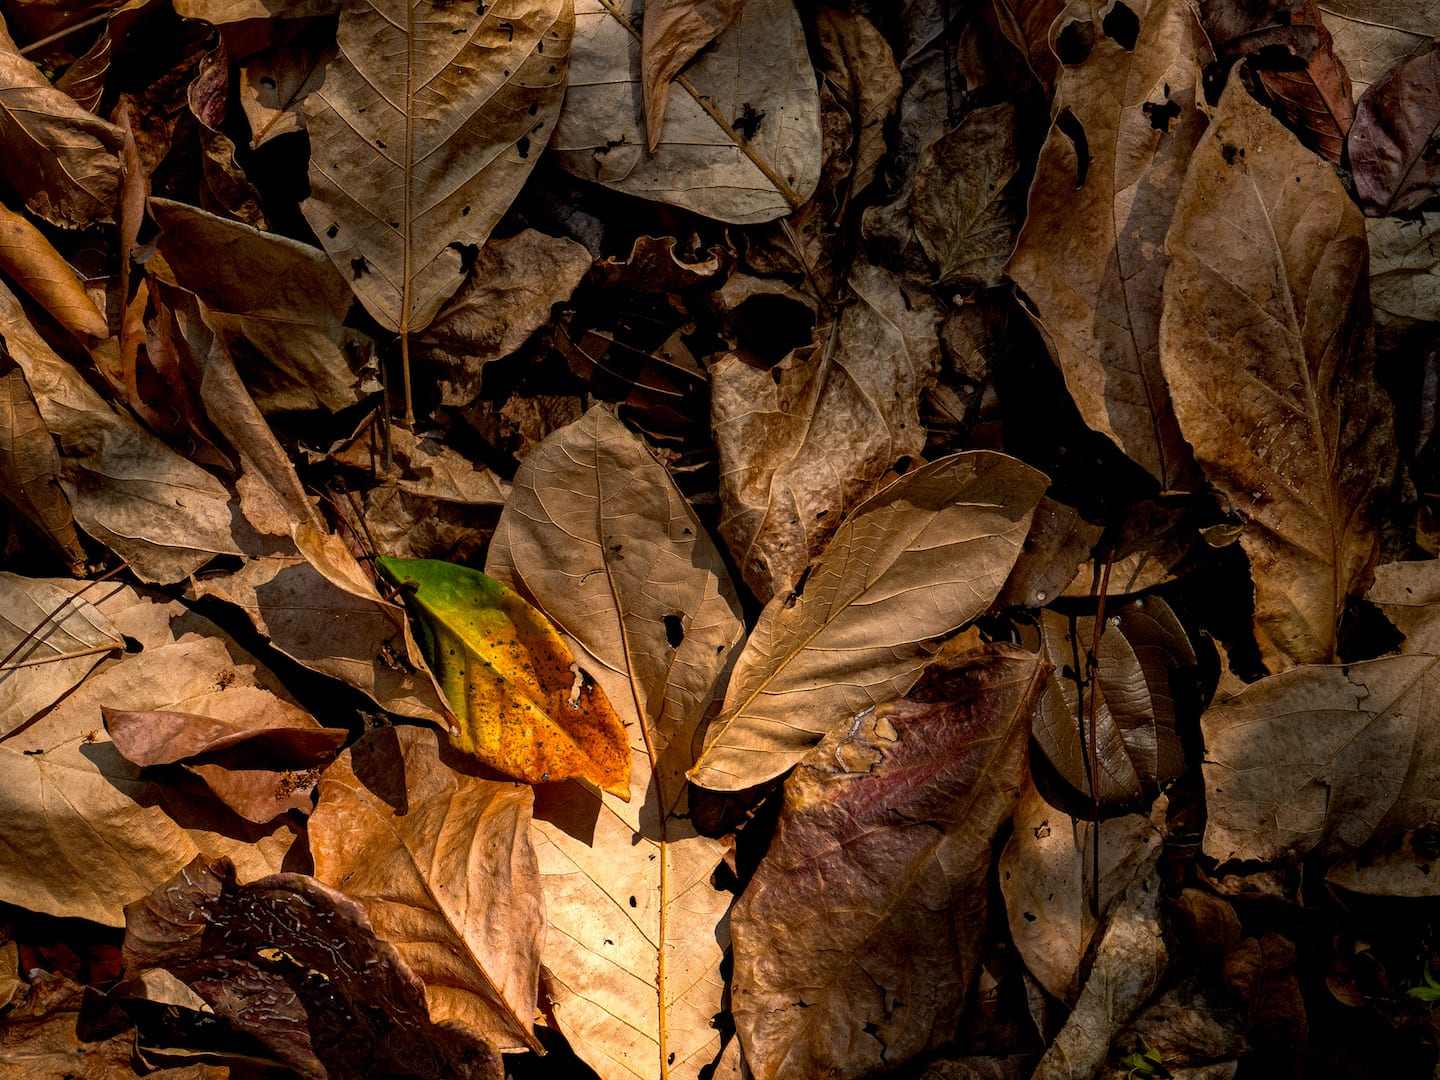 Layers of dry leaves and other plant debris which regulate the flow of nutrients in an ecosystem. Cinnamons, mangoes and bamboos bring their unique dried fragrances to these fundamental processes. Photo: Umeed Mistry